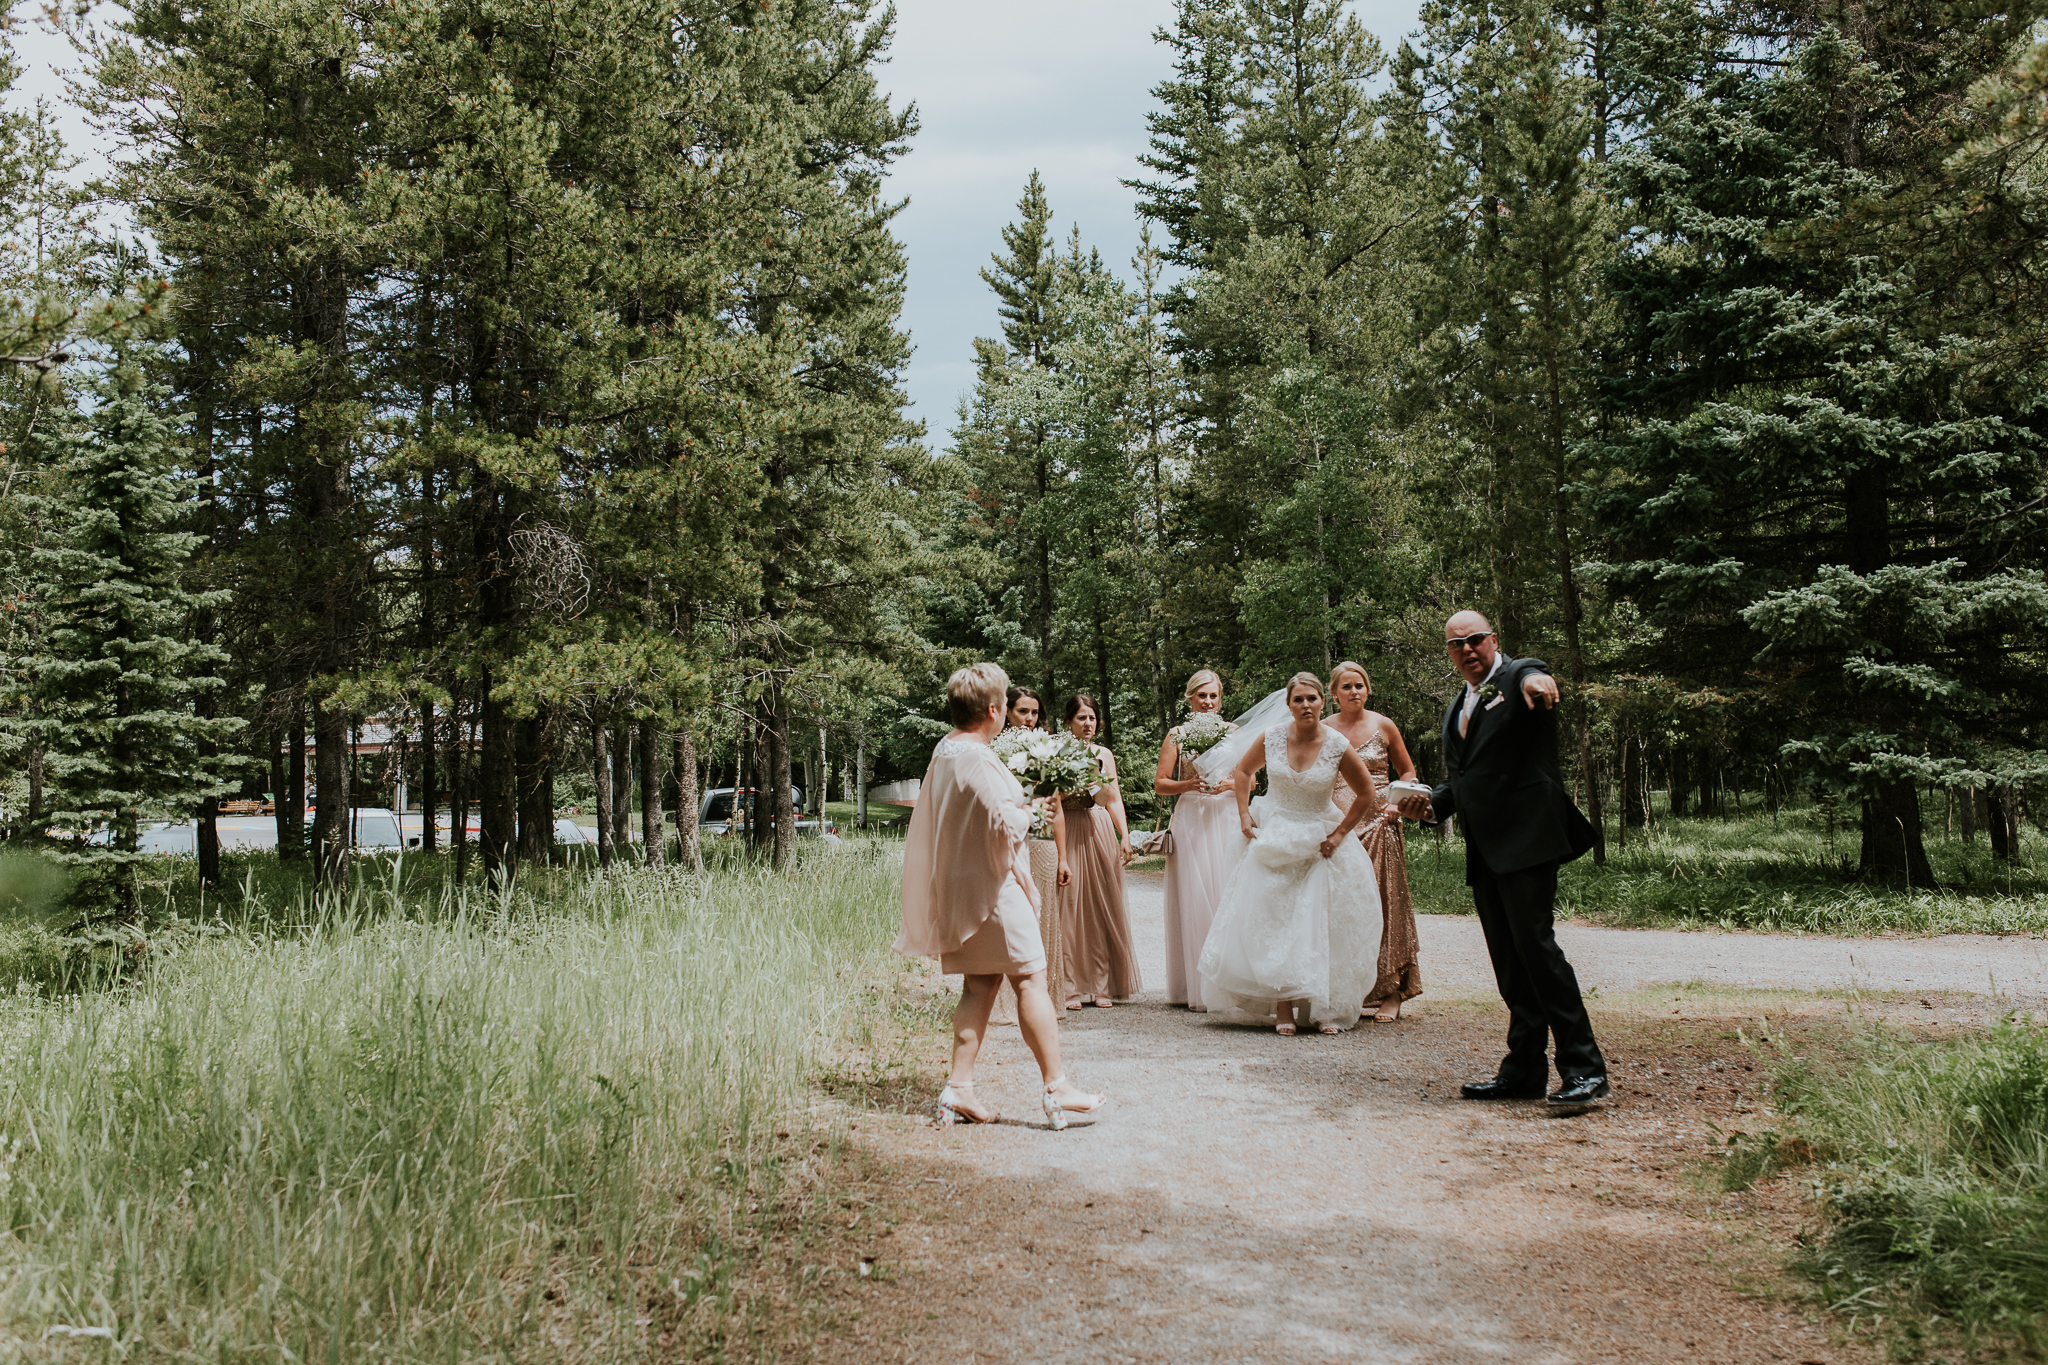 Bridal party walking through forest path to ceremony site at Delta Kananaskis